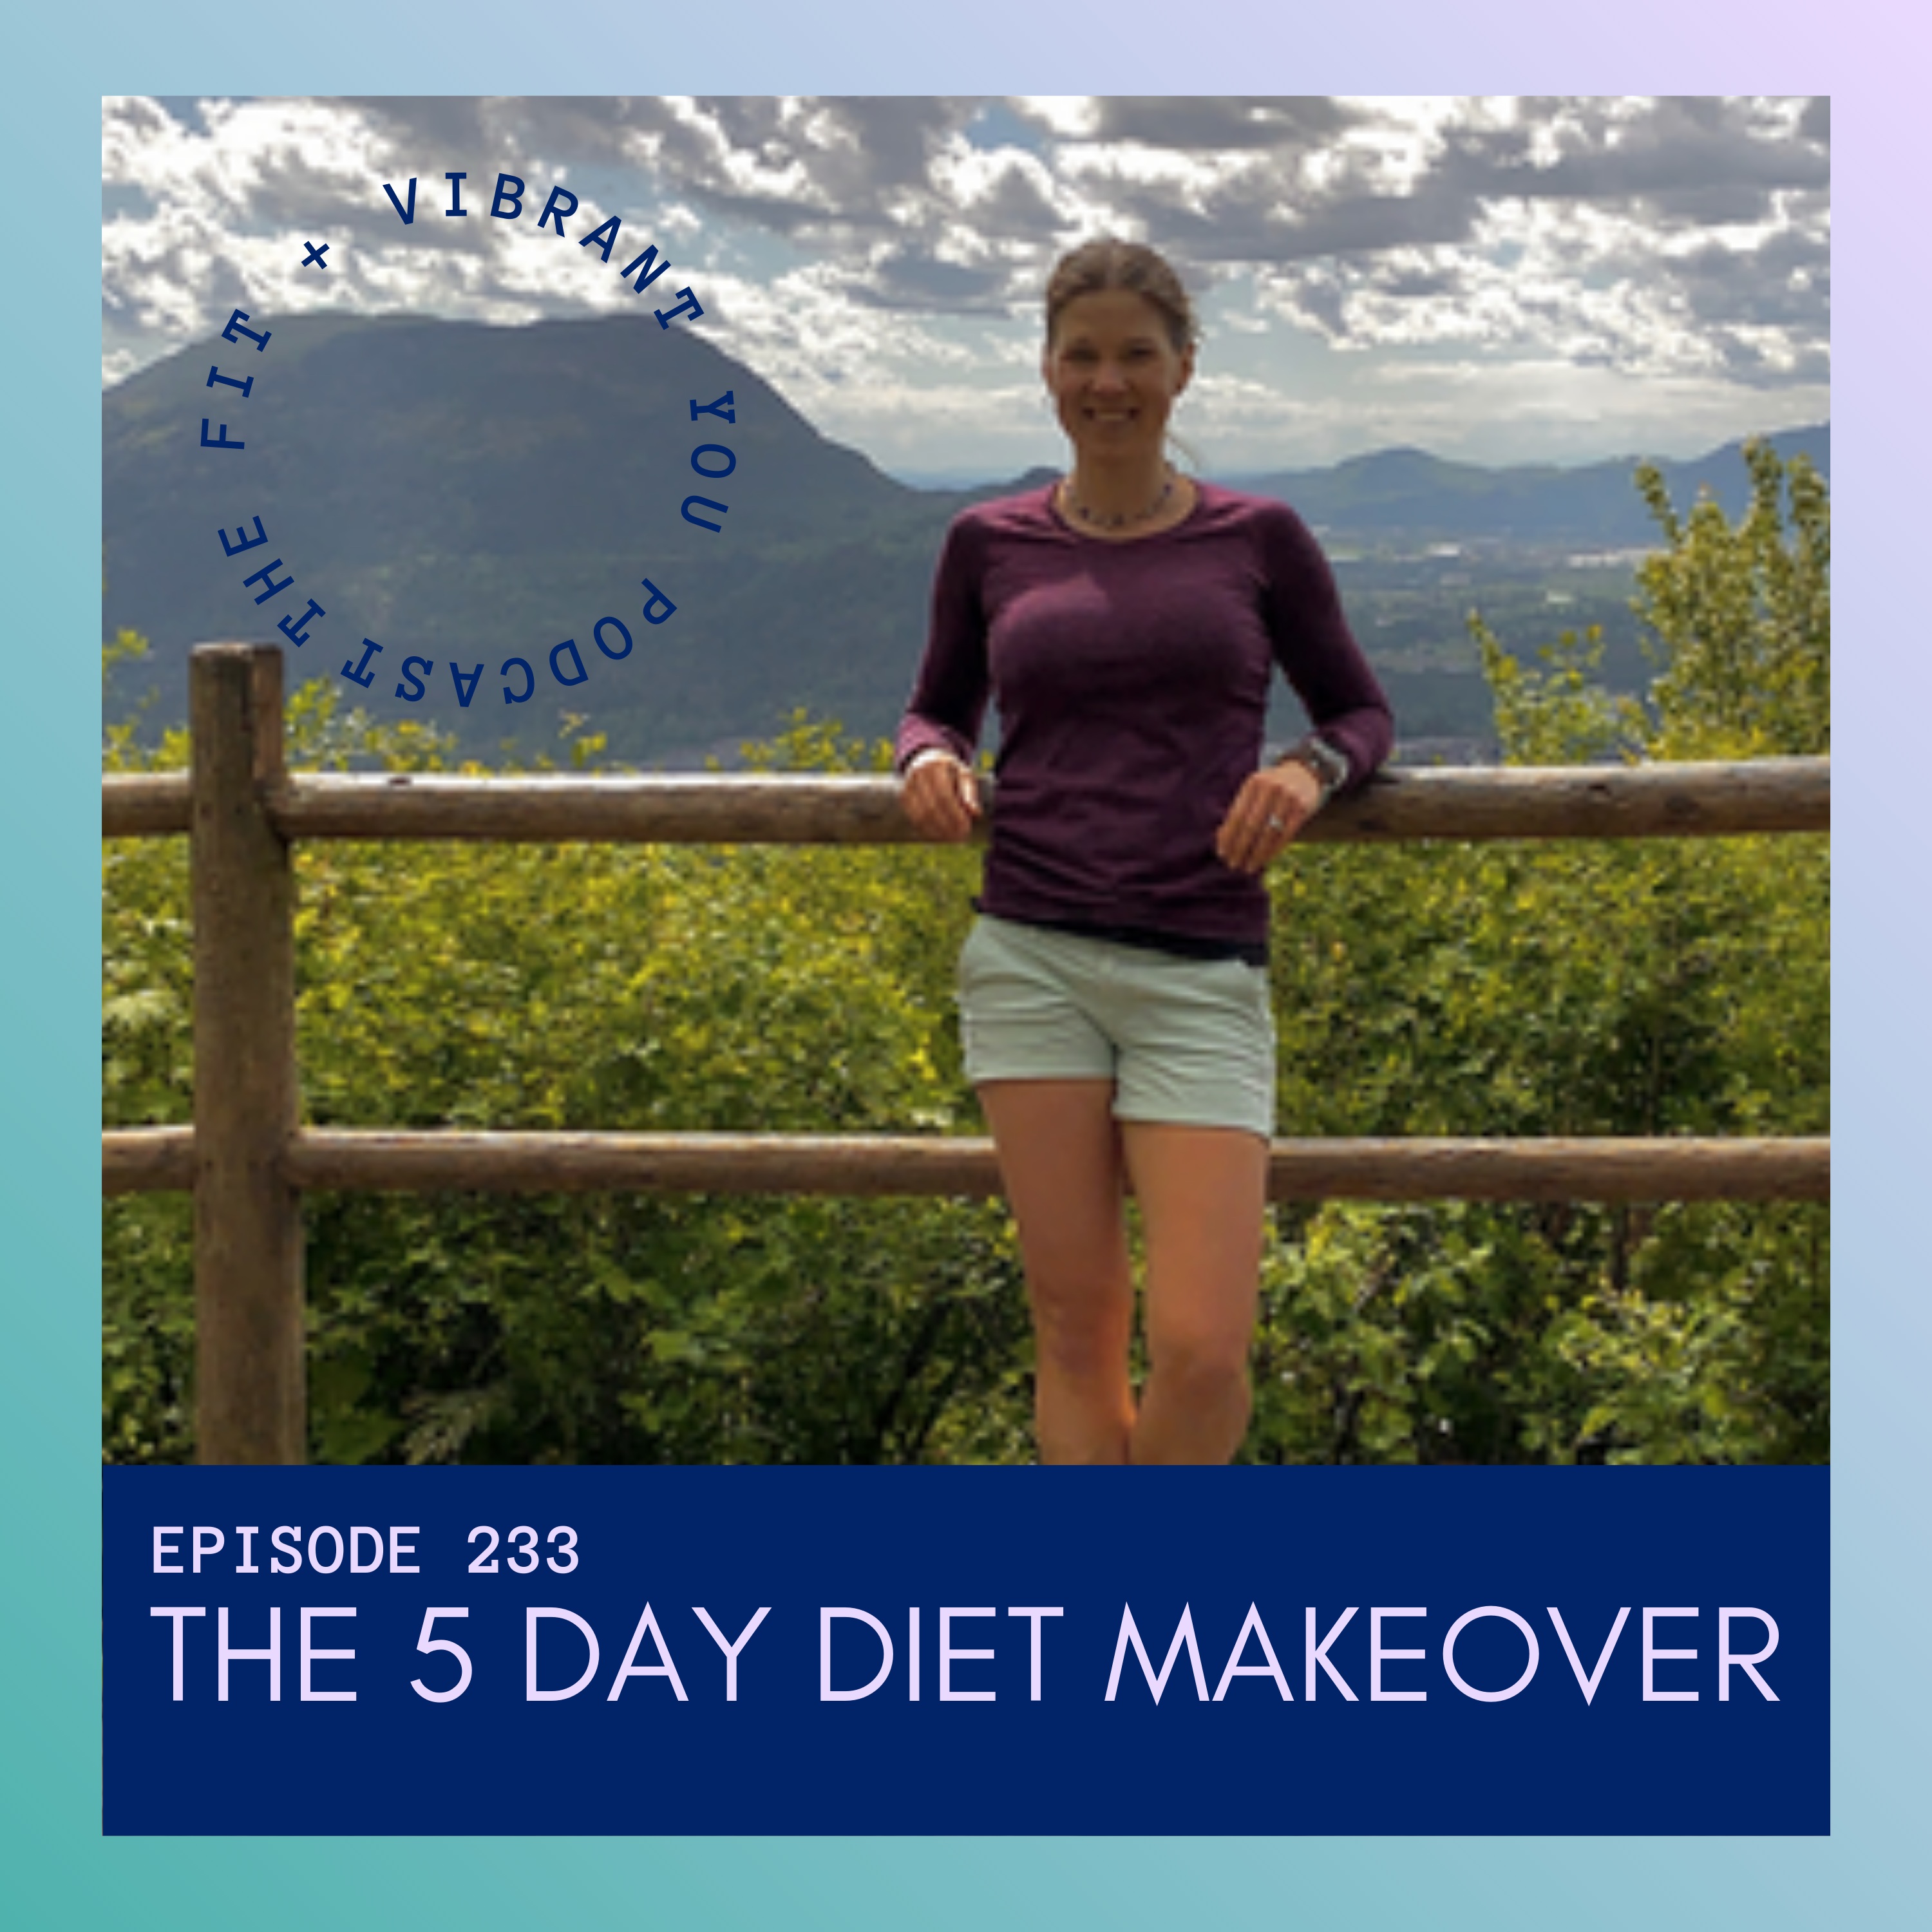 The 5 Day Diet Makeover: FVY233